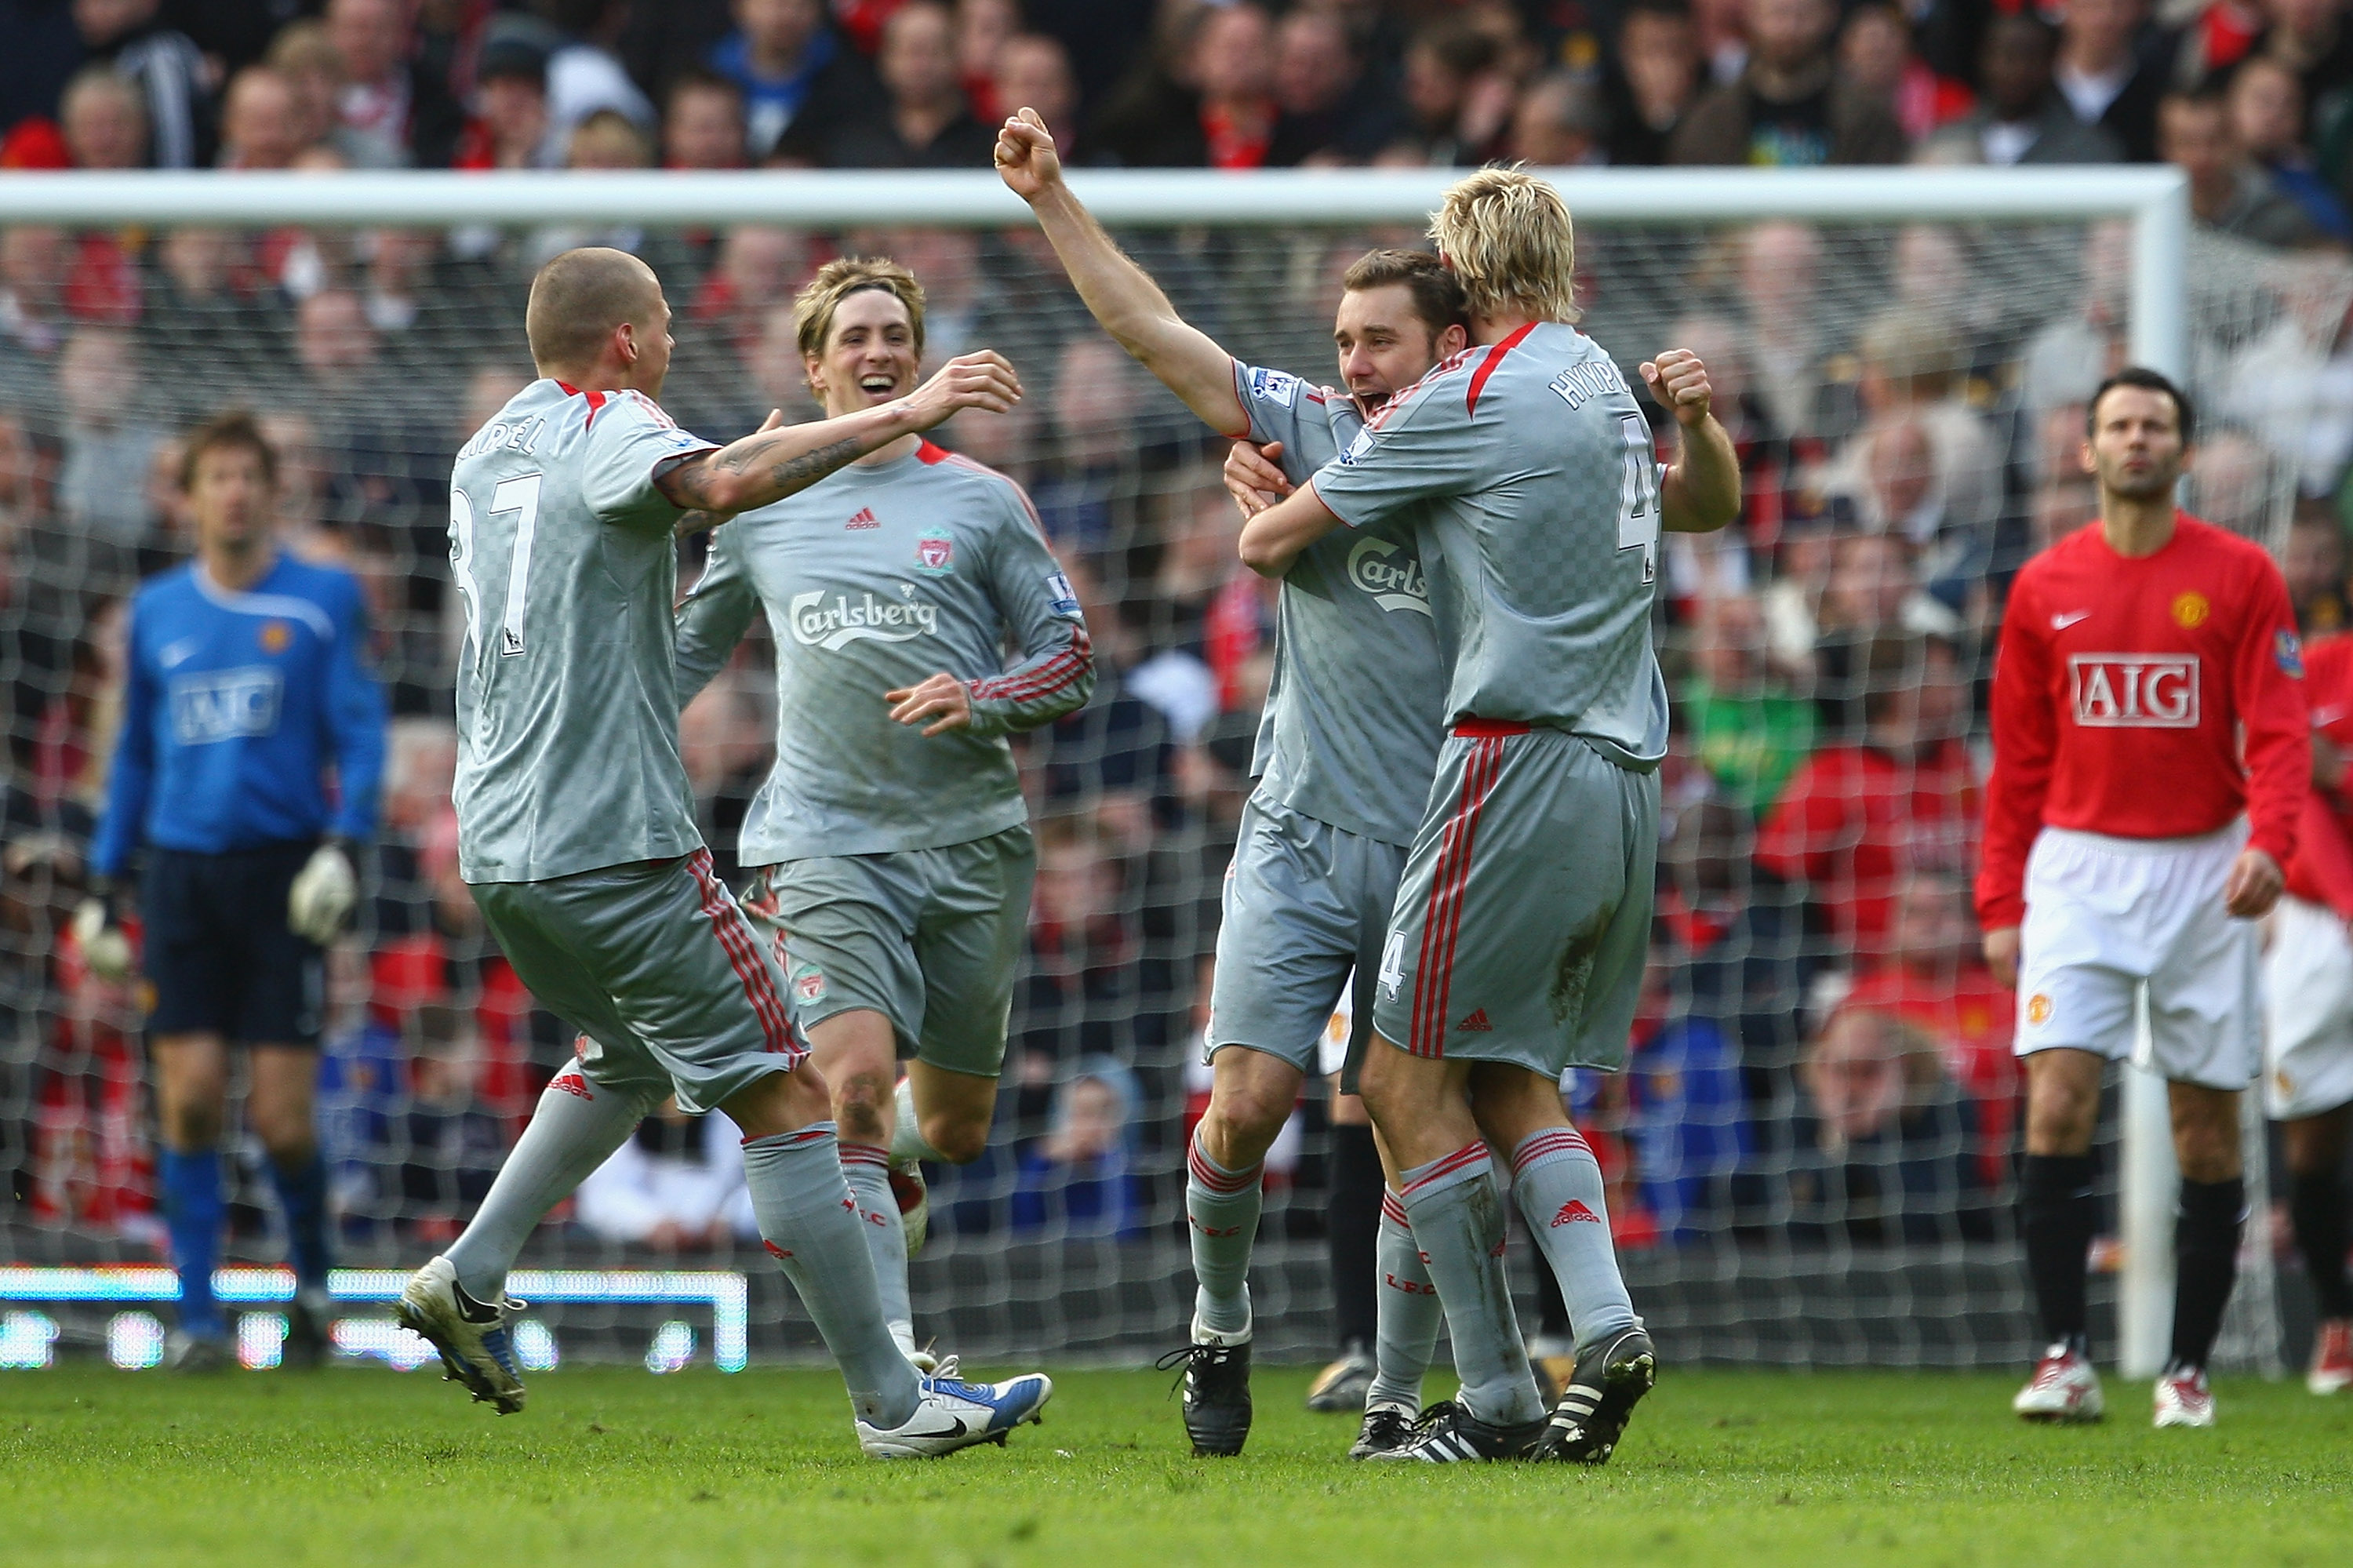 MANCHESTER, UNITED KINGDOM - MARCH 14:  Fabio Aurelio of Liverpool celebrates scoring his team's third goal with his team mates during the Barclays Premier League match between Manchester United and Liverpool at Old Trafford on March 14, 2009 in Mancheste